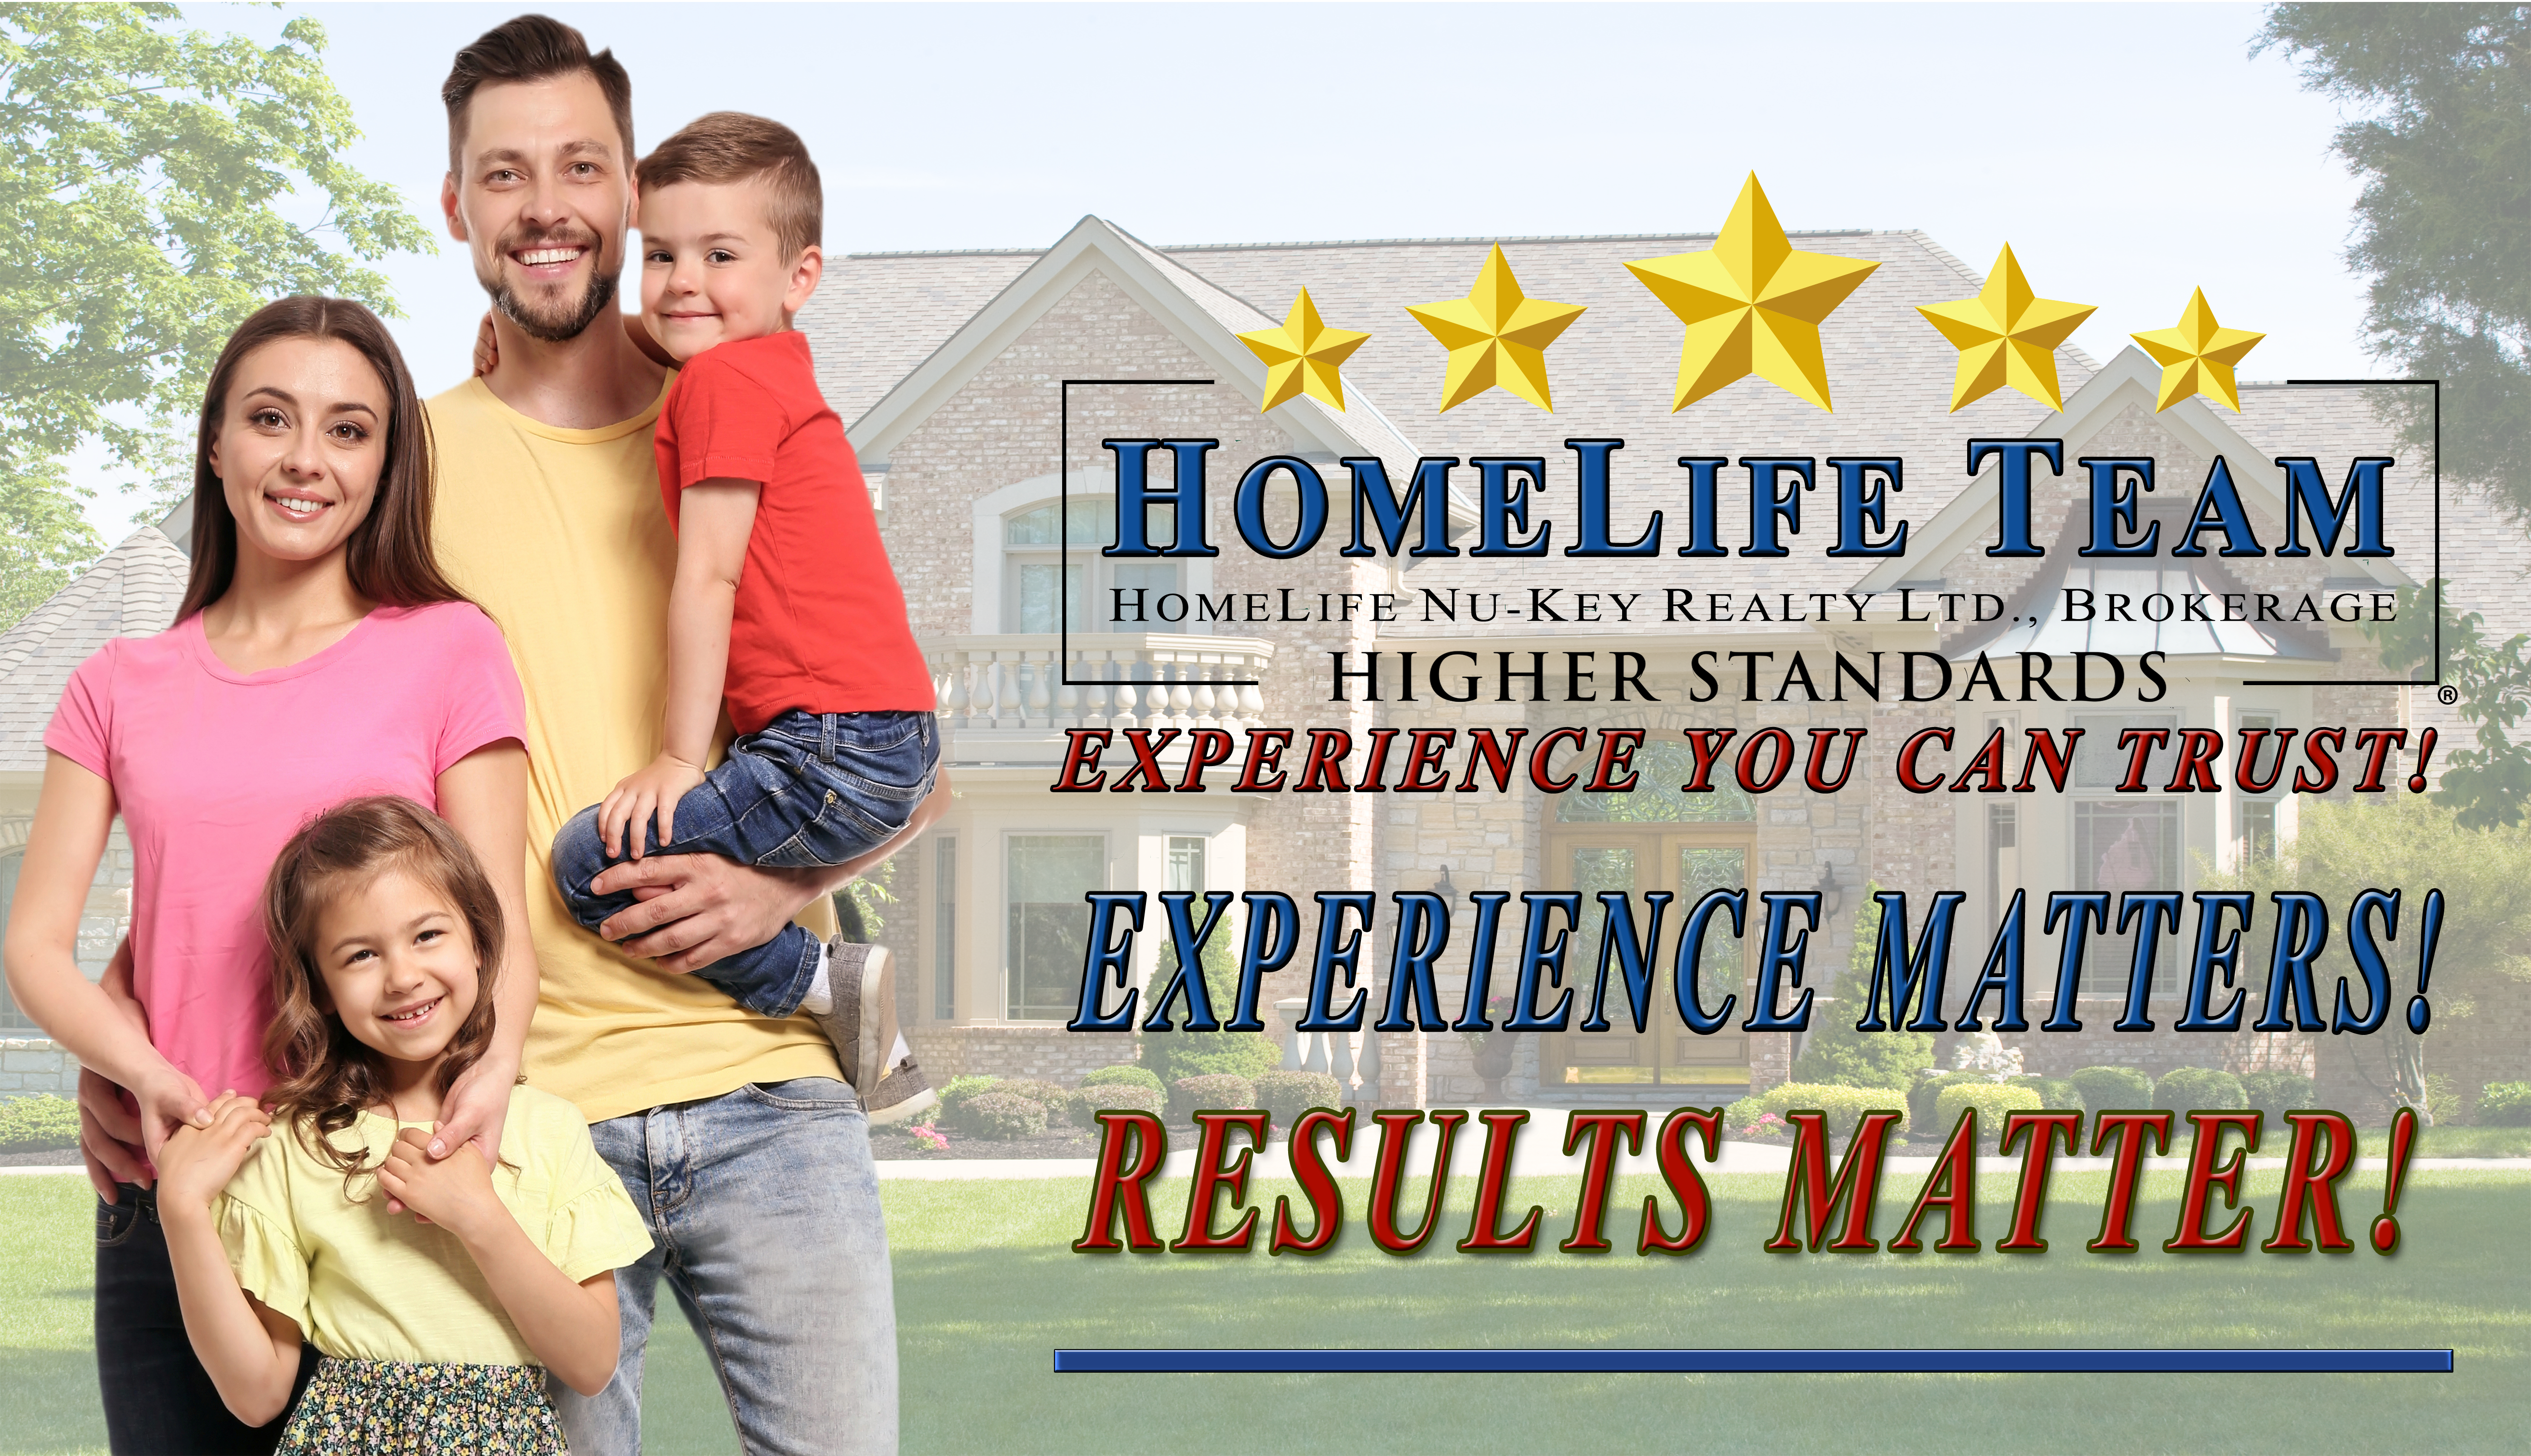 Homelife-team- experience matters-Results matter.png